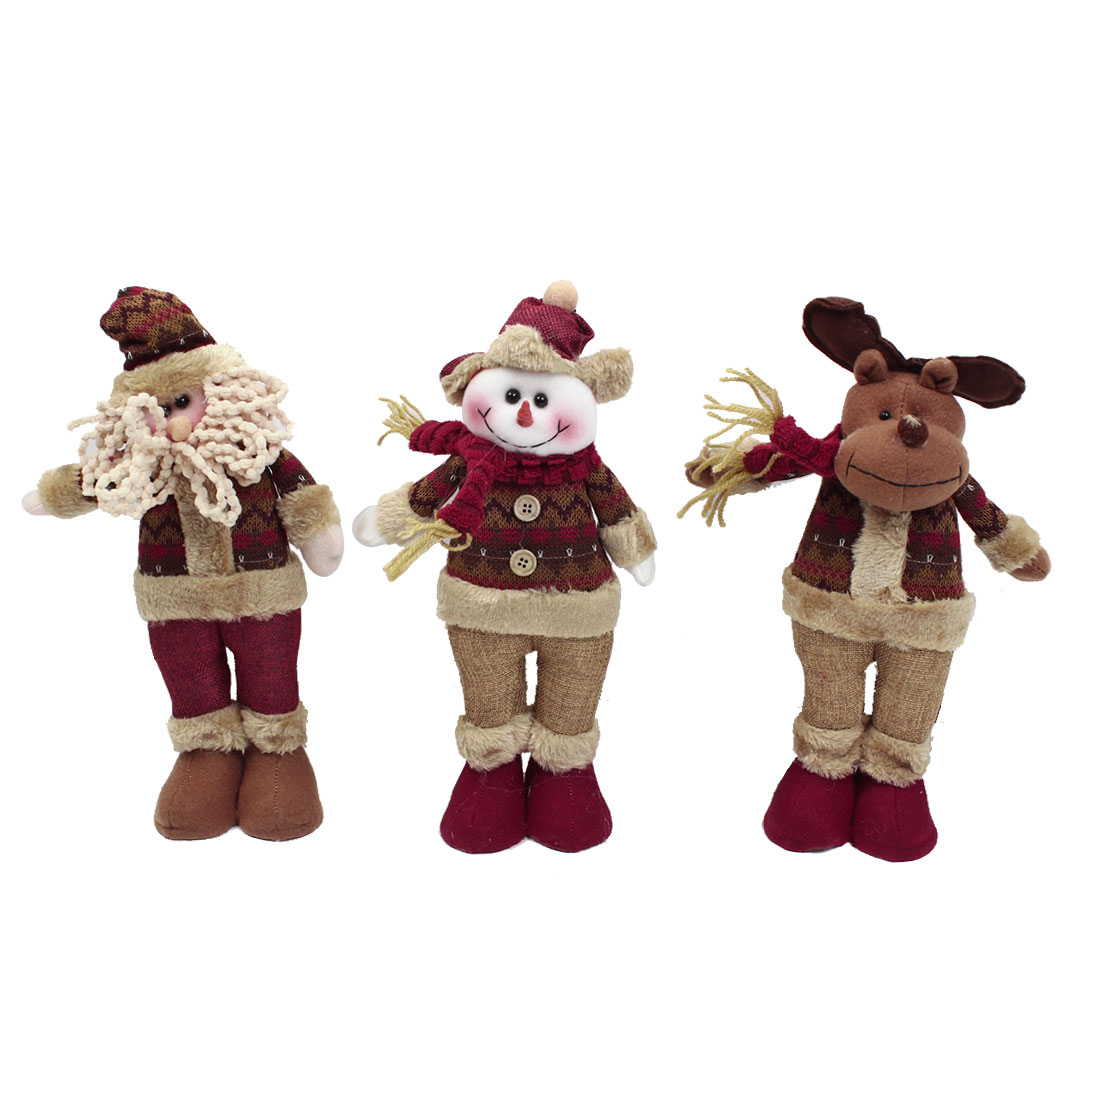 Santa Claus Snowman Reindeer Christmas Toy Gift 3 in 1 Set for Xmas Trees Decor